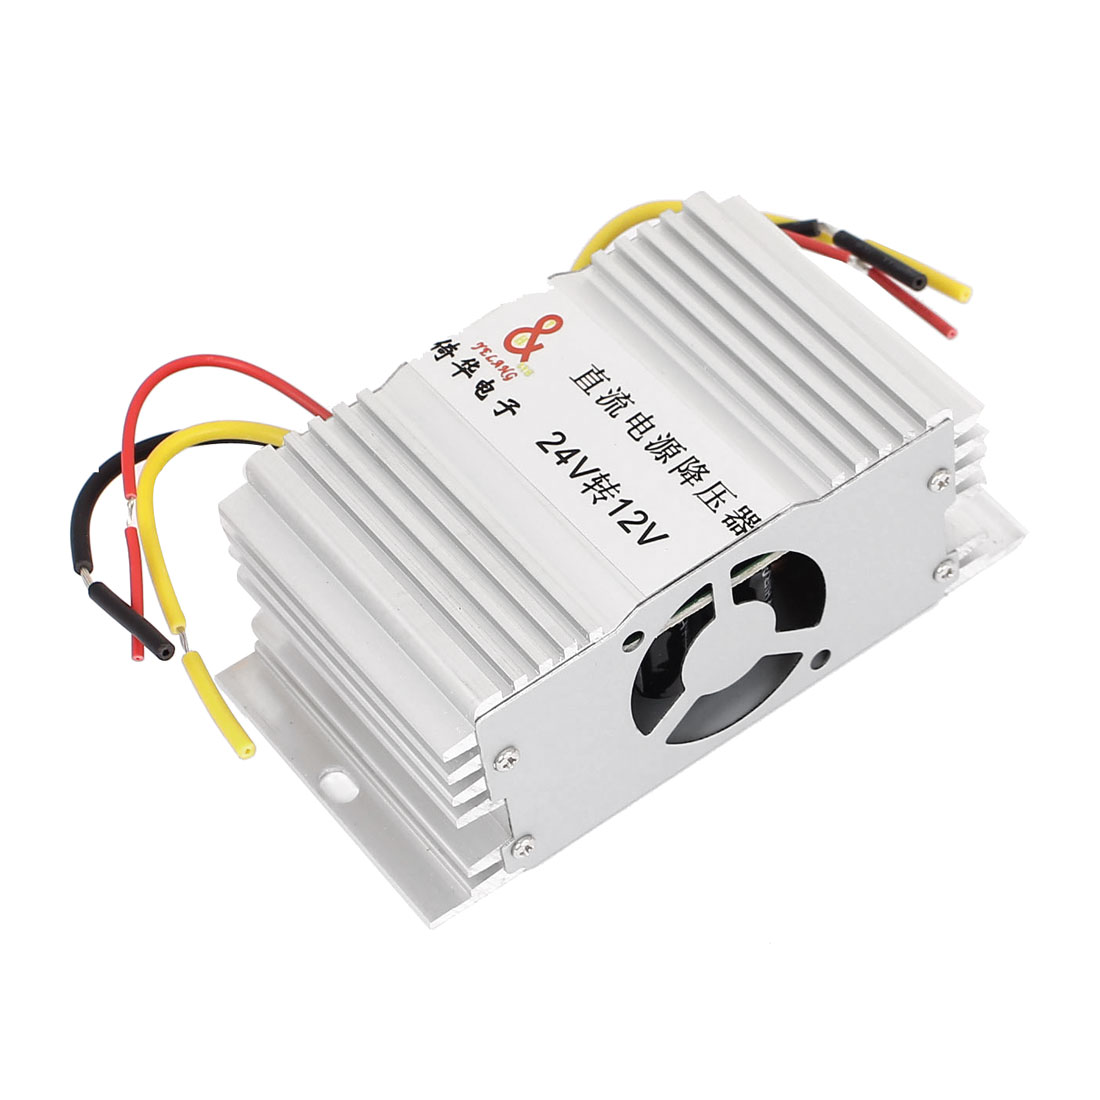 DC 24V to 12V 10A 120W Car Power Supply Transformer Converter